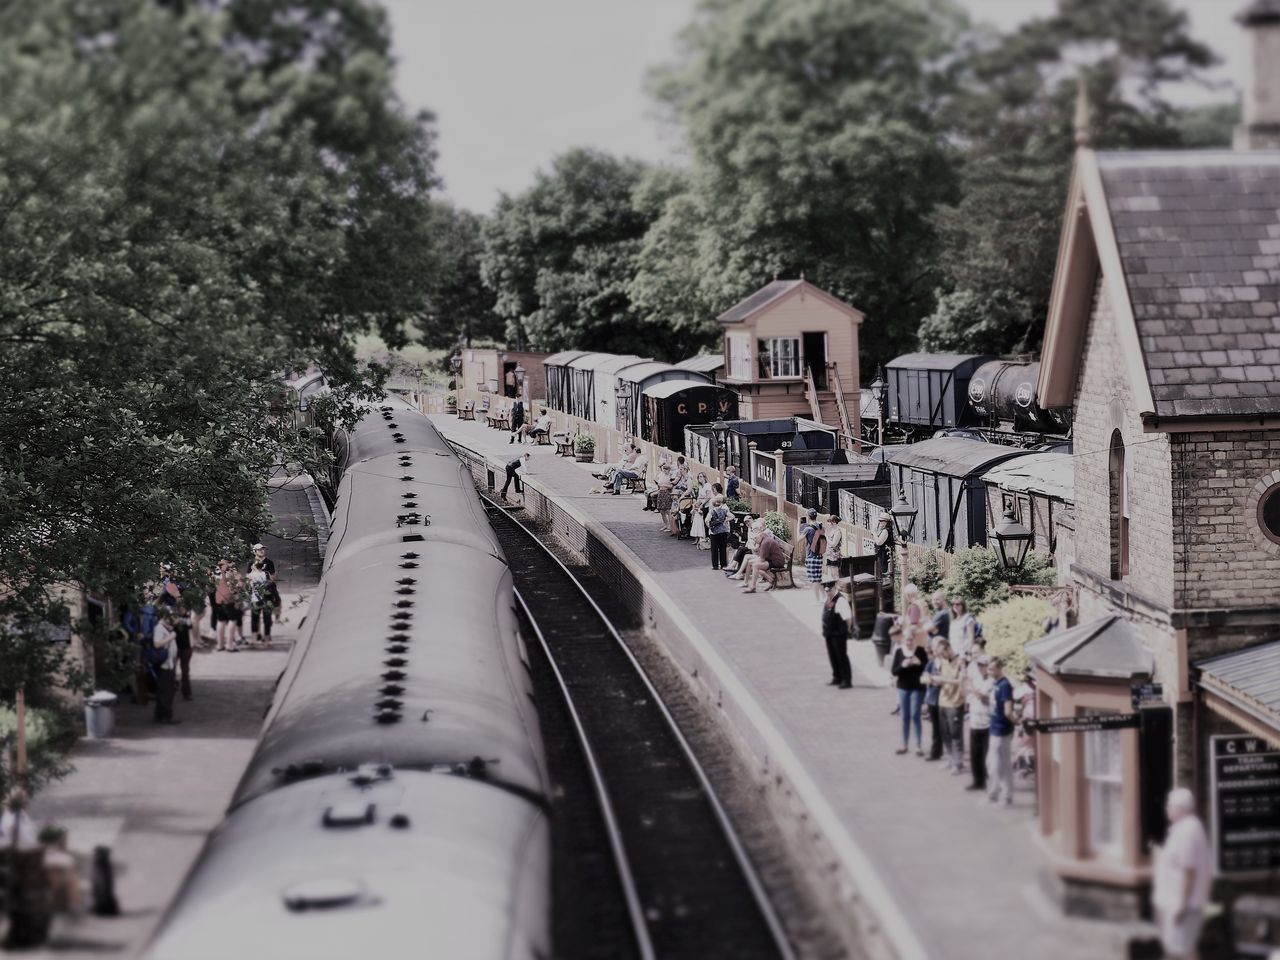 Severn Valley Railway Diarama  People And Places Station Building Station House Sunday Afternoon Train Carriages Train Station Platform